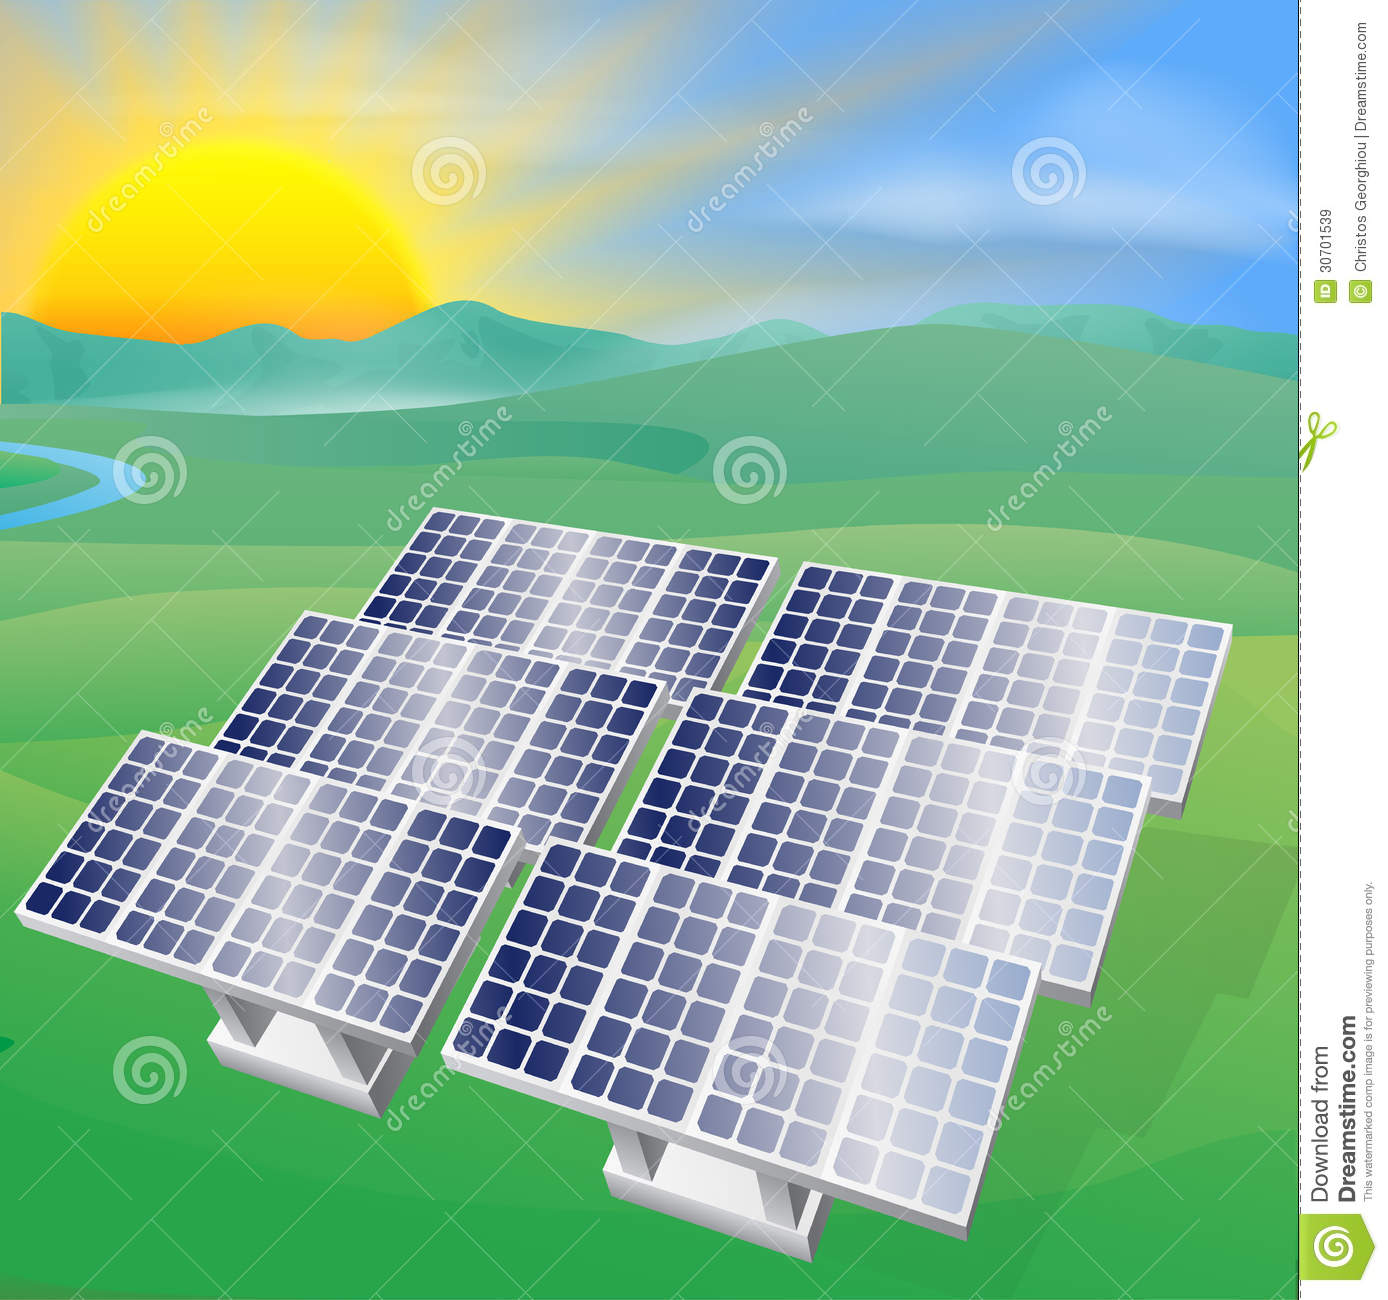 Illustration of a solar panel photovoltaic cells generating power and ...